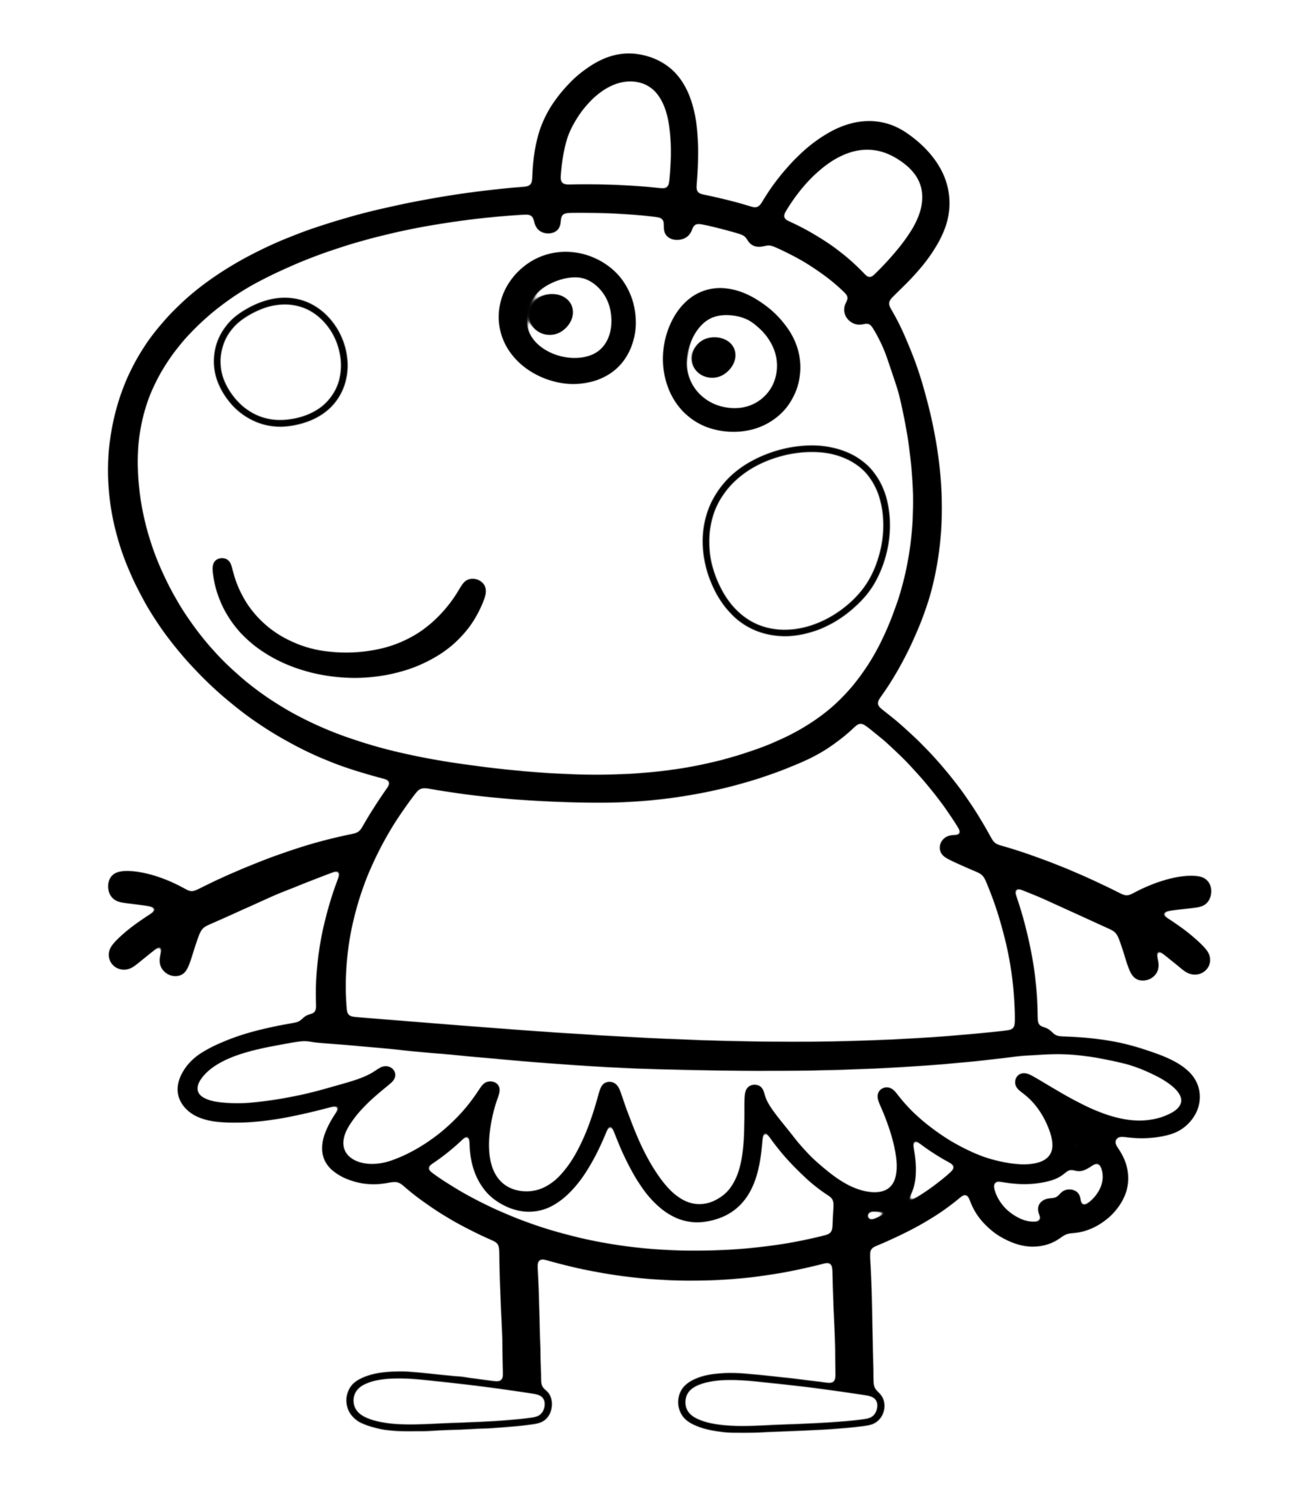 ... Photos - Peppa Pig Colouring Pages A4 Peppa Pig Colouring Pages A4